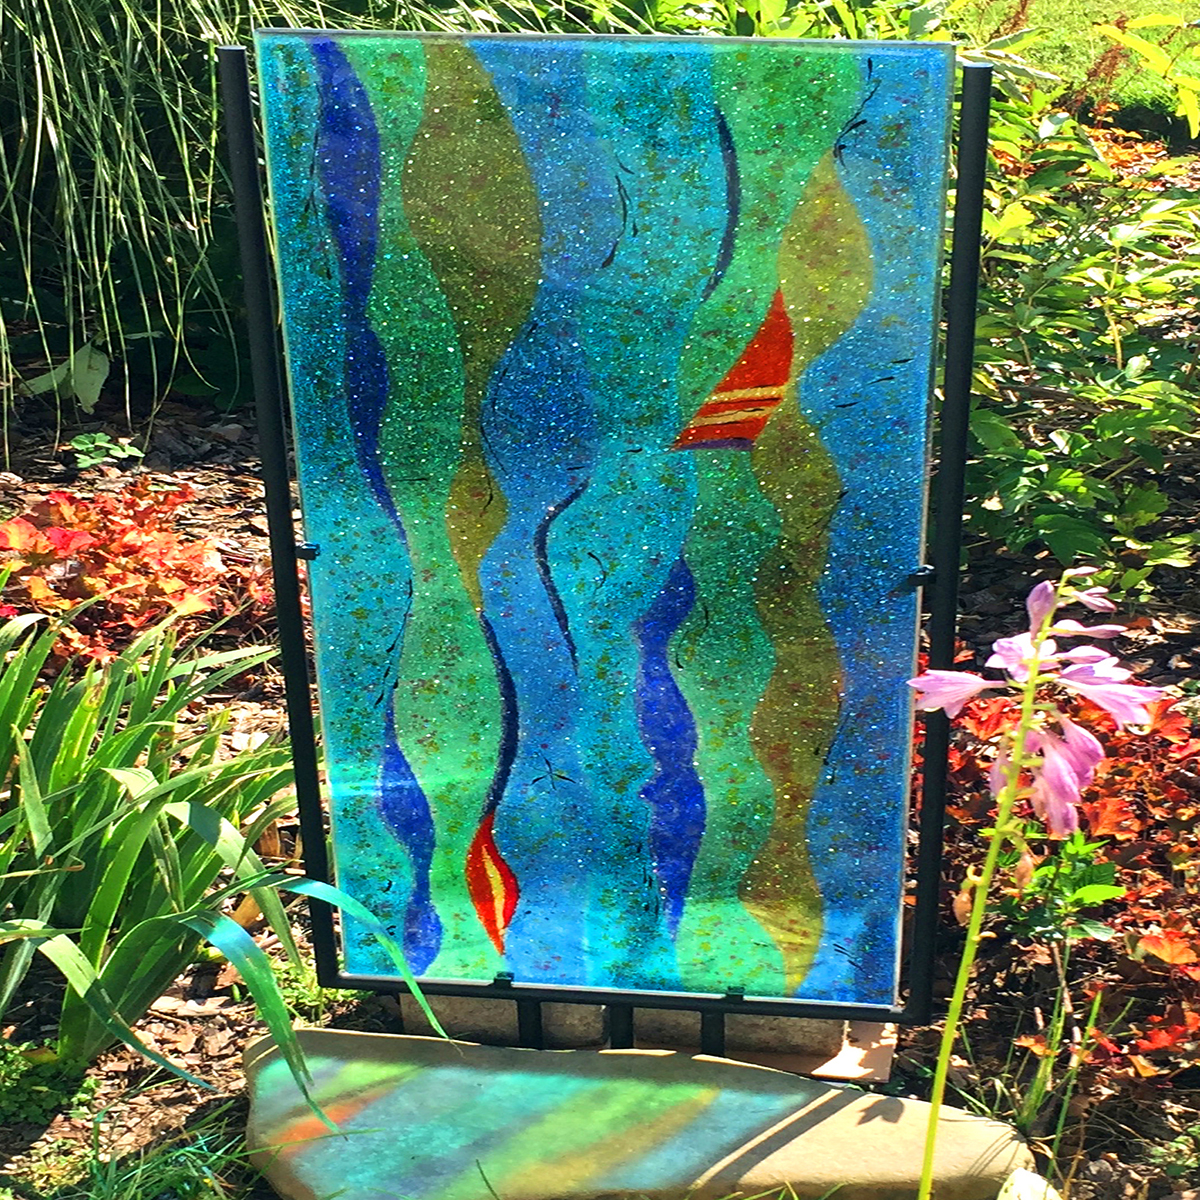 Glass Sculpture In The Garden Nancy Gong